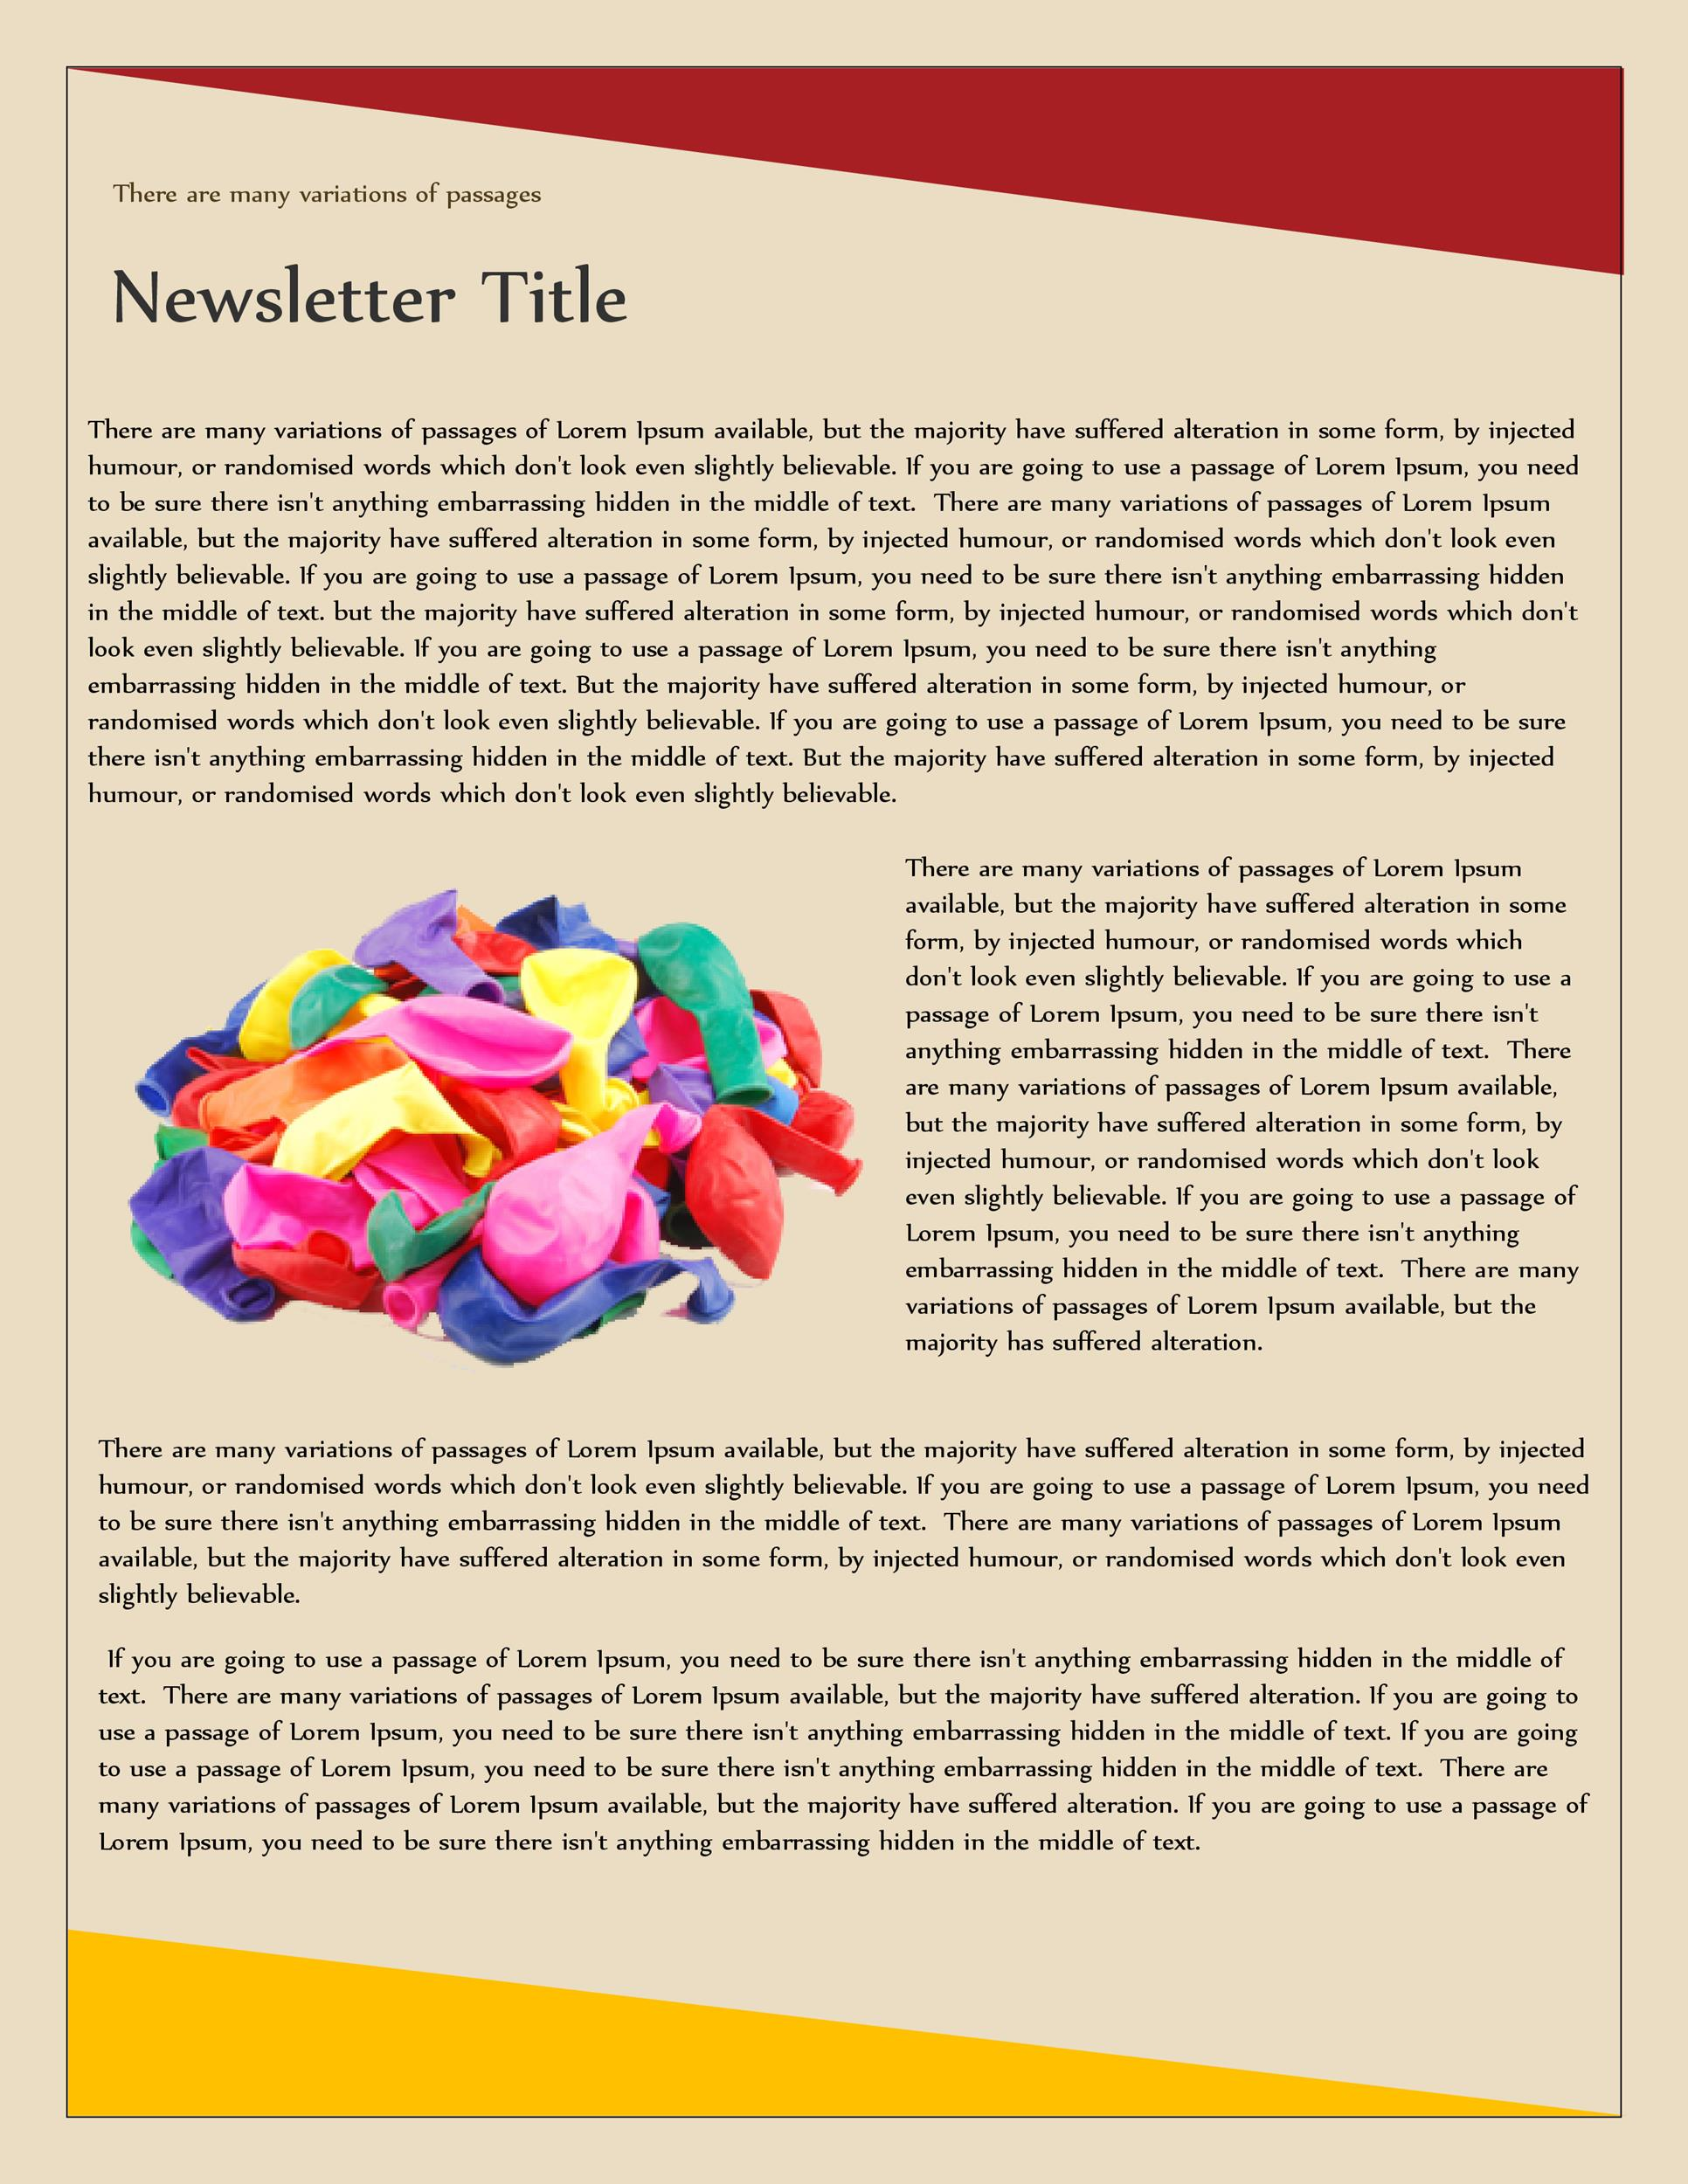 Free Newsletter Template 13